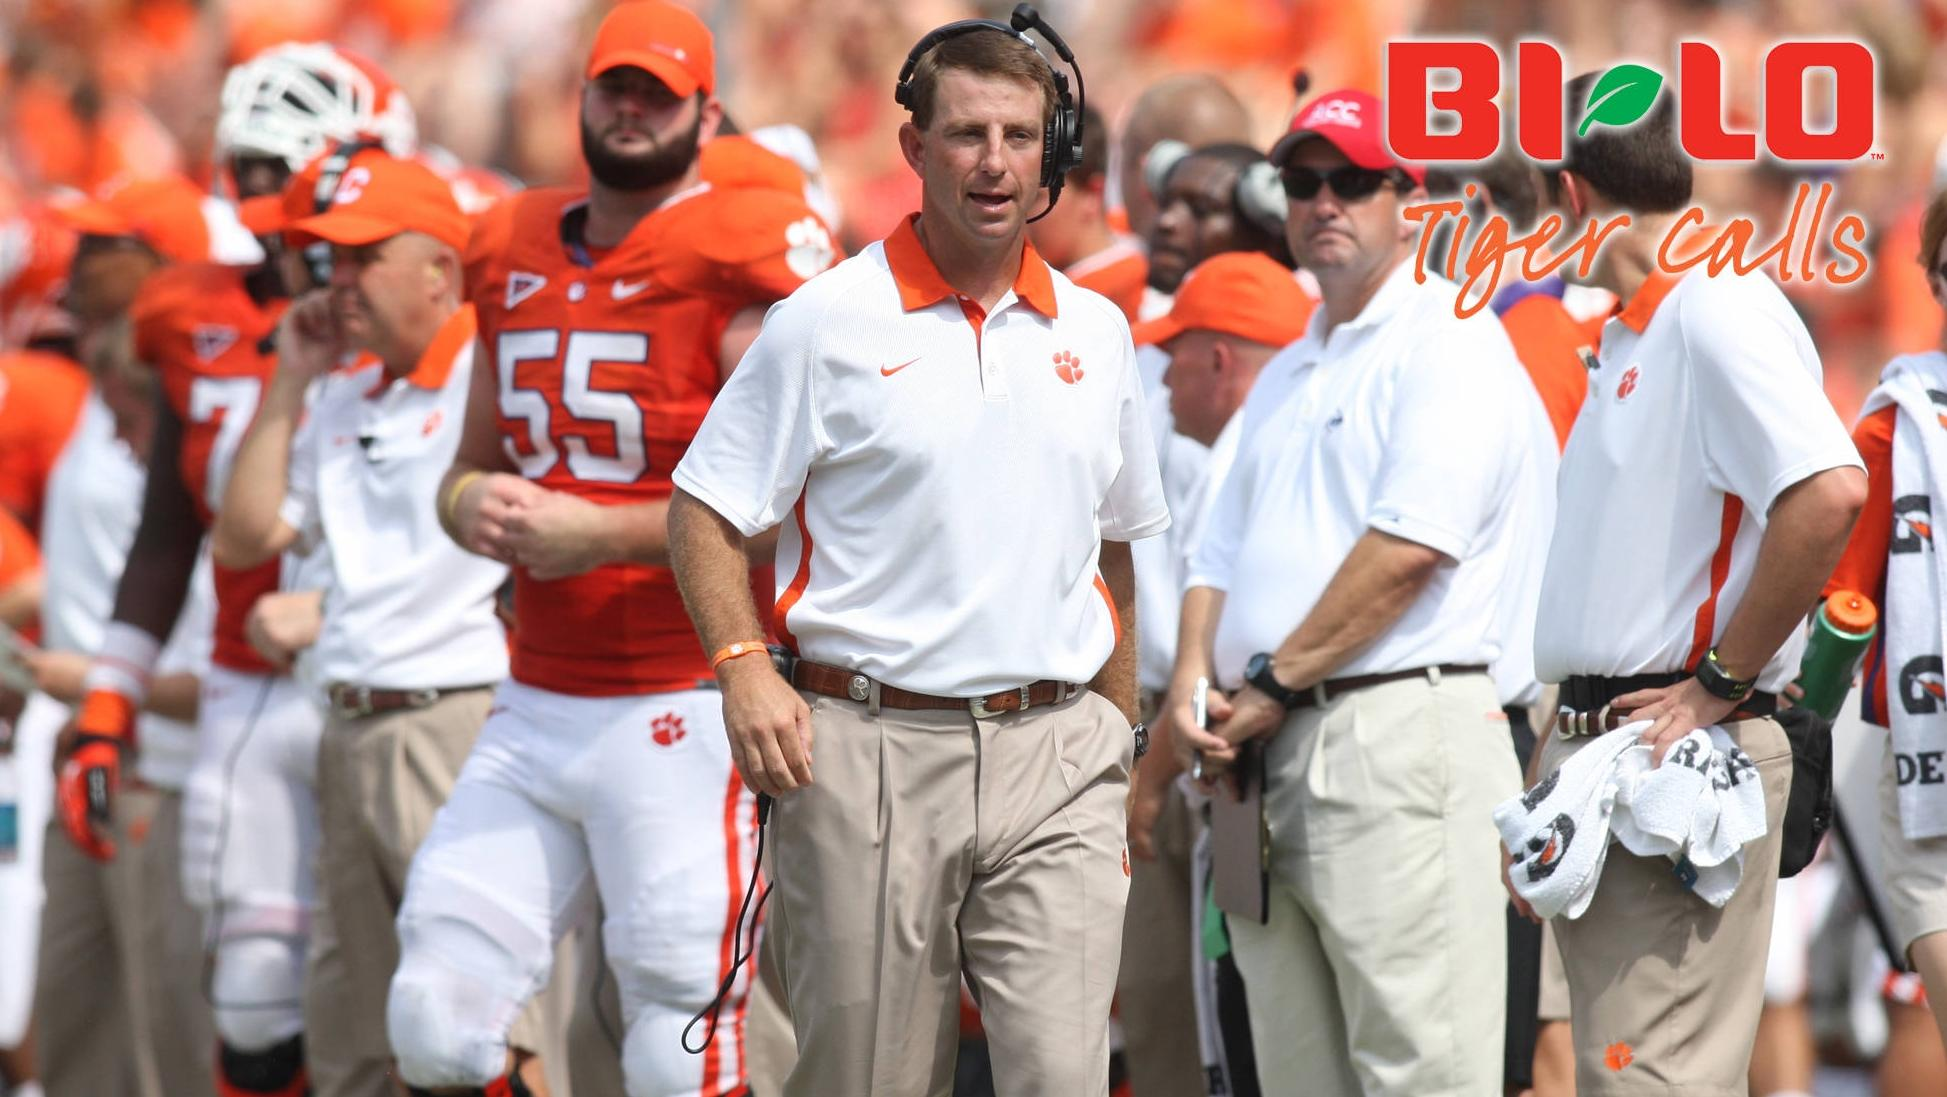 BI-LO Tiger Calls with Dabo Swinney Kicks Off Inaugural Live Web Stream Monday